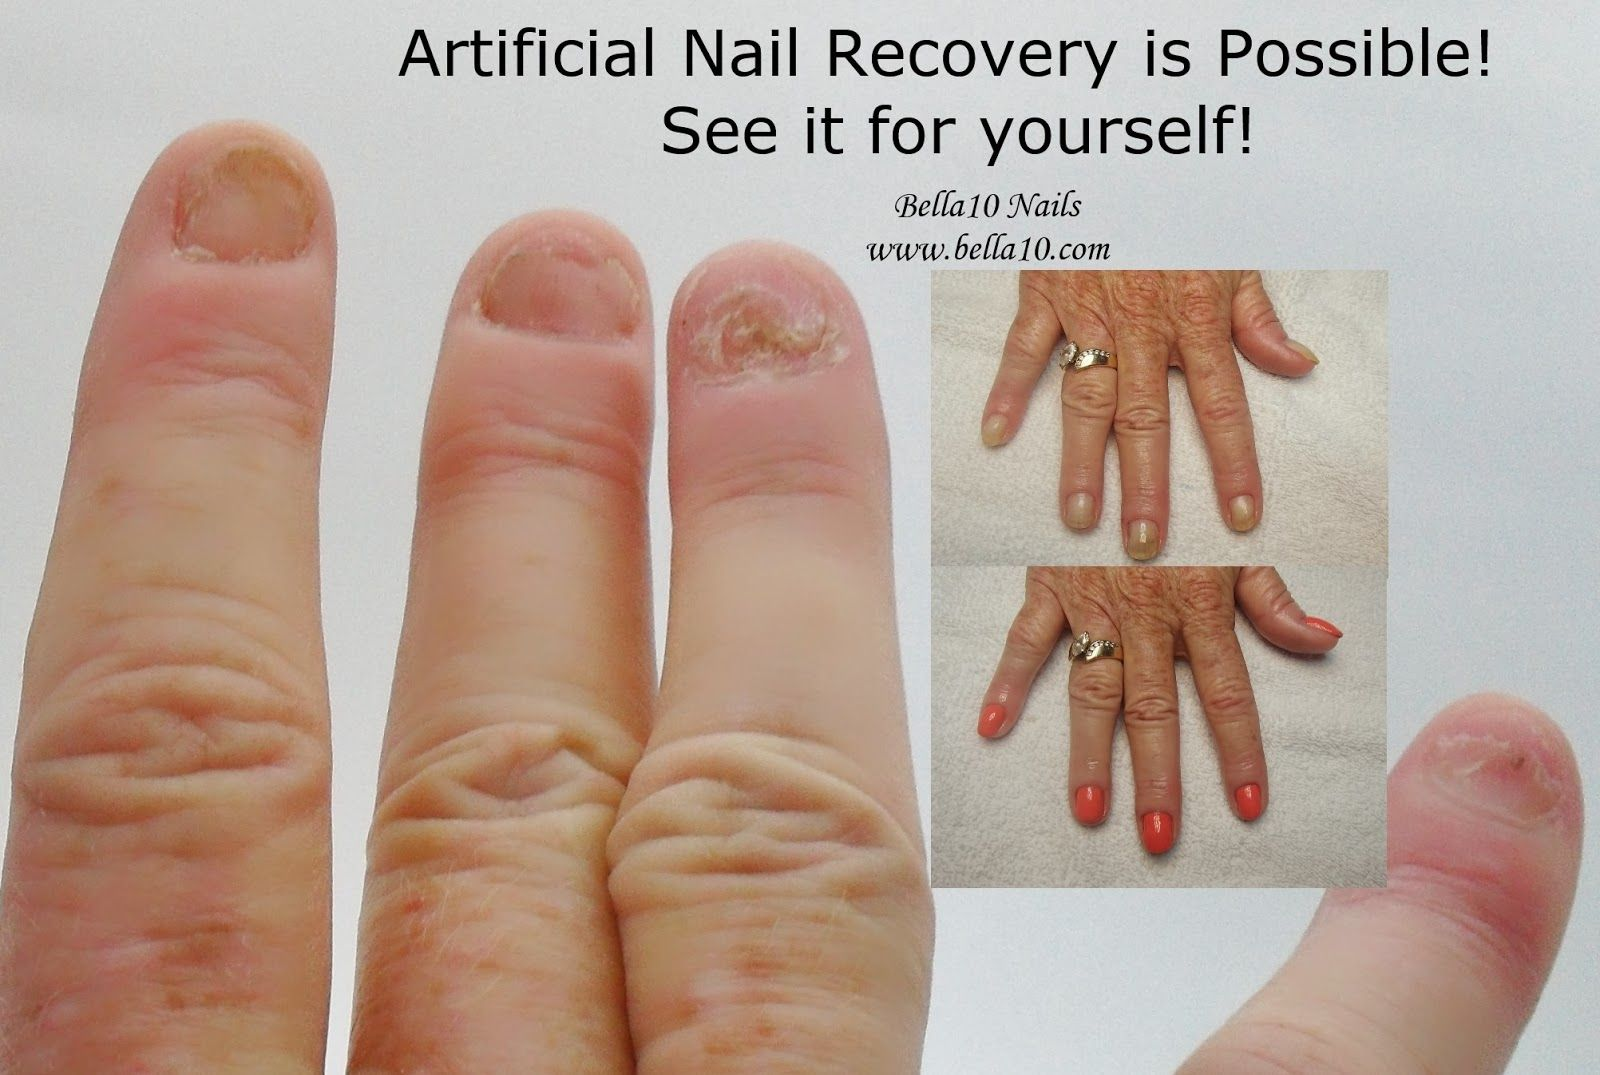 Have Your Acrylic Or Gel Nails Removed The Safe Way Only And Know Your Natural Nails Will Be Better For It Artificial Nails Remove Acrylic Nails Gel Nails